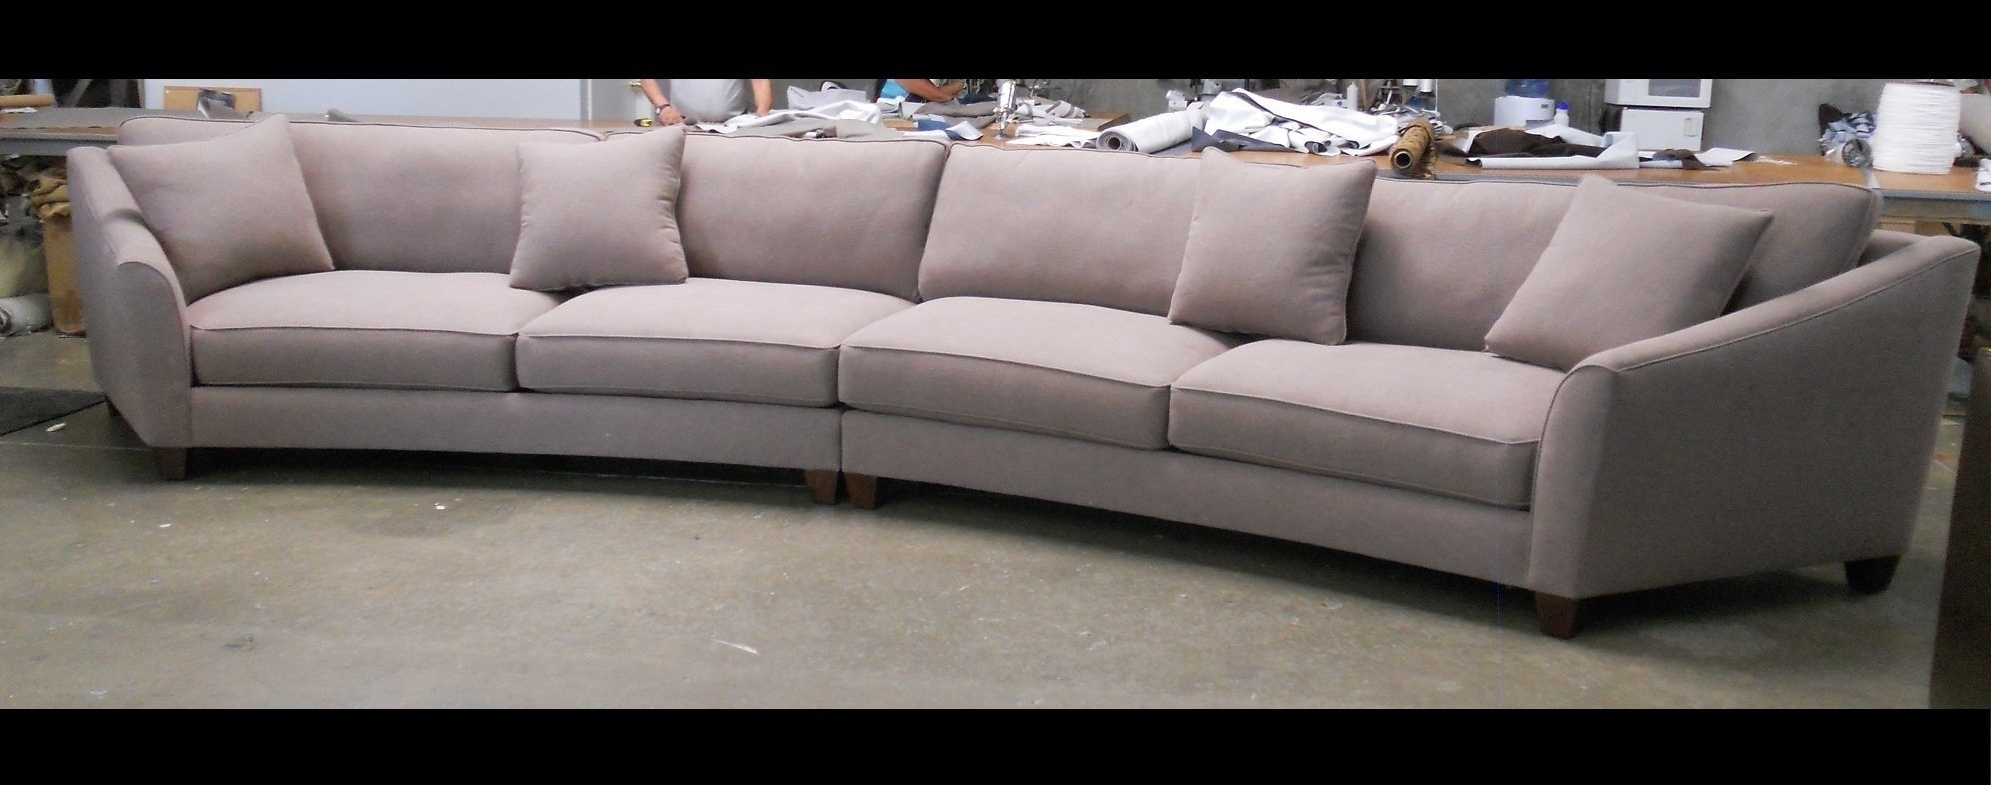 Nz Sectional Sofas For Preferred Furniture : 5060 Recliner Sectional Sofa Costco $699 Corner Couch (Gallery 6 of 20)